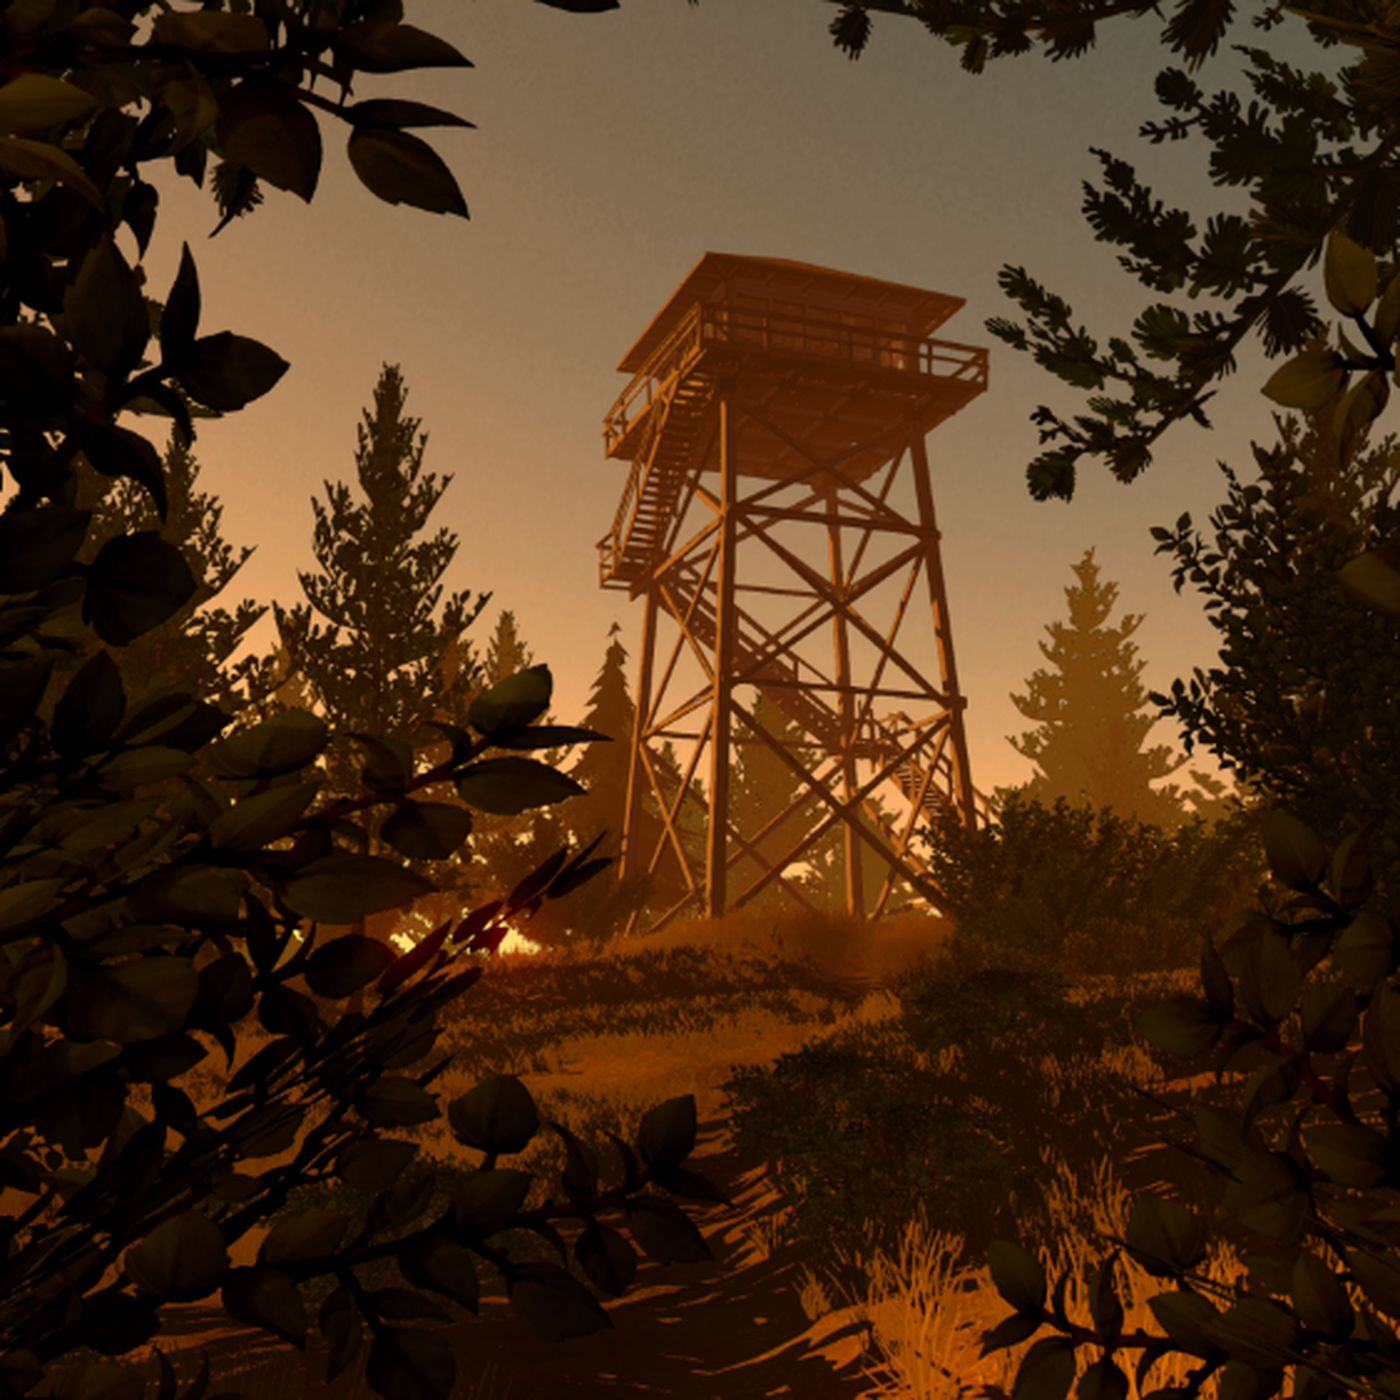 Firewatch inspired a fan to become youngest fire tower historian ...